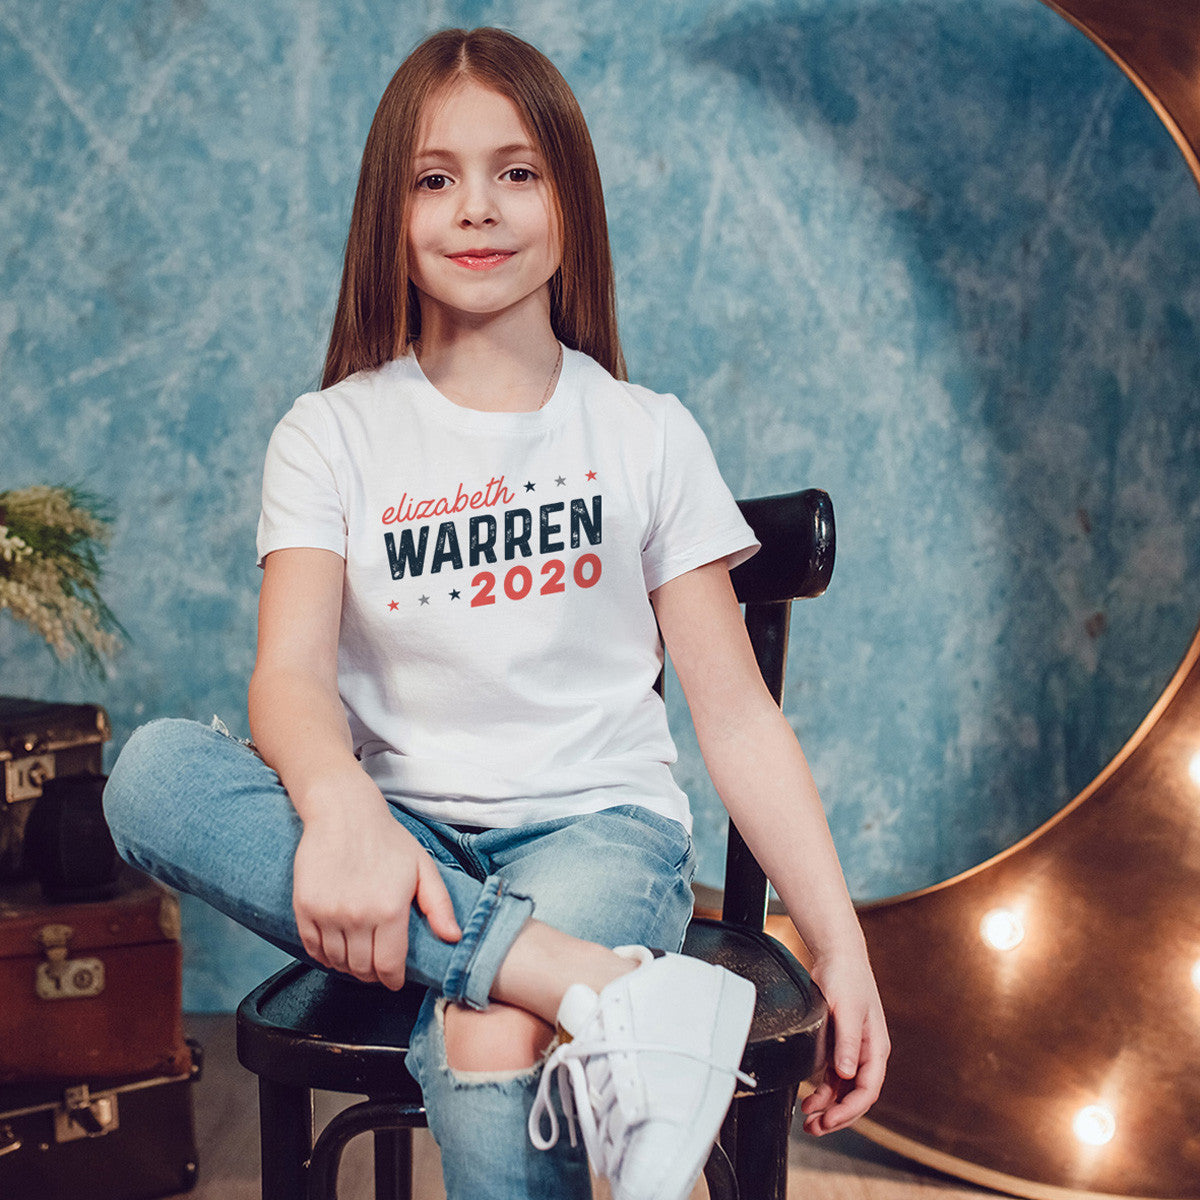 Elizabeth Warren 2020 Youth Size T-Shirt